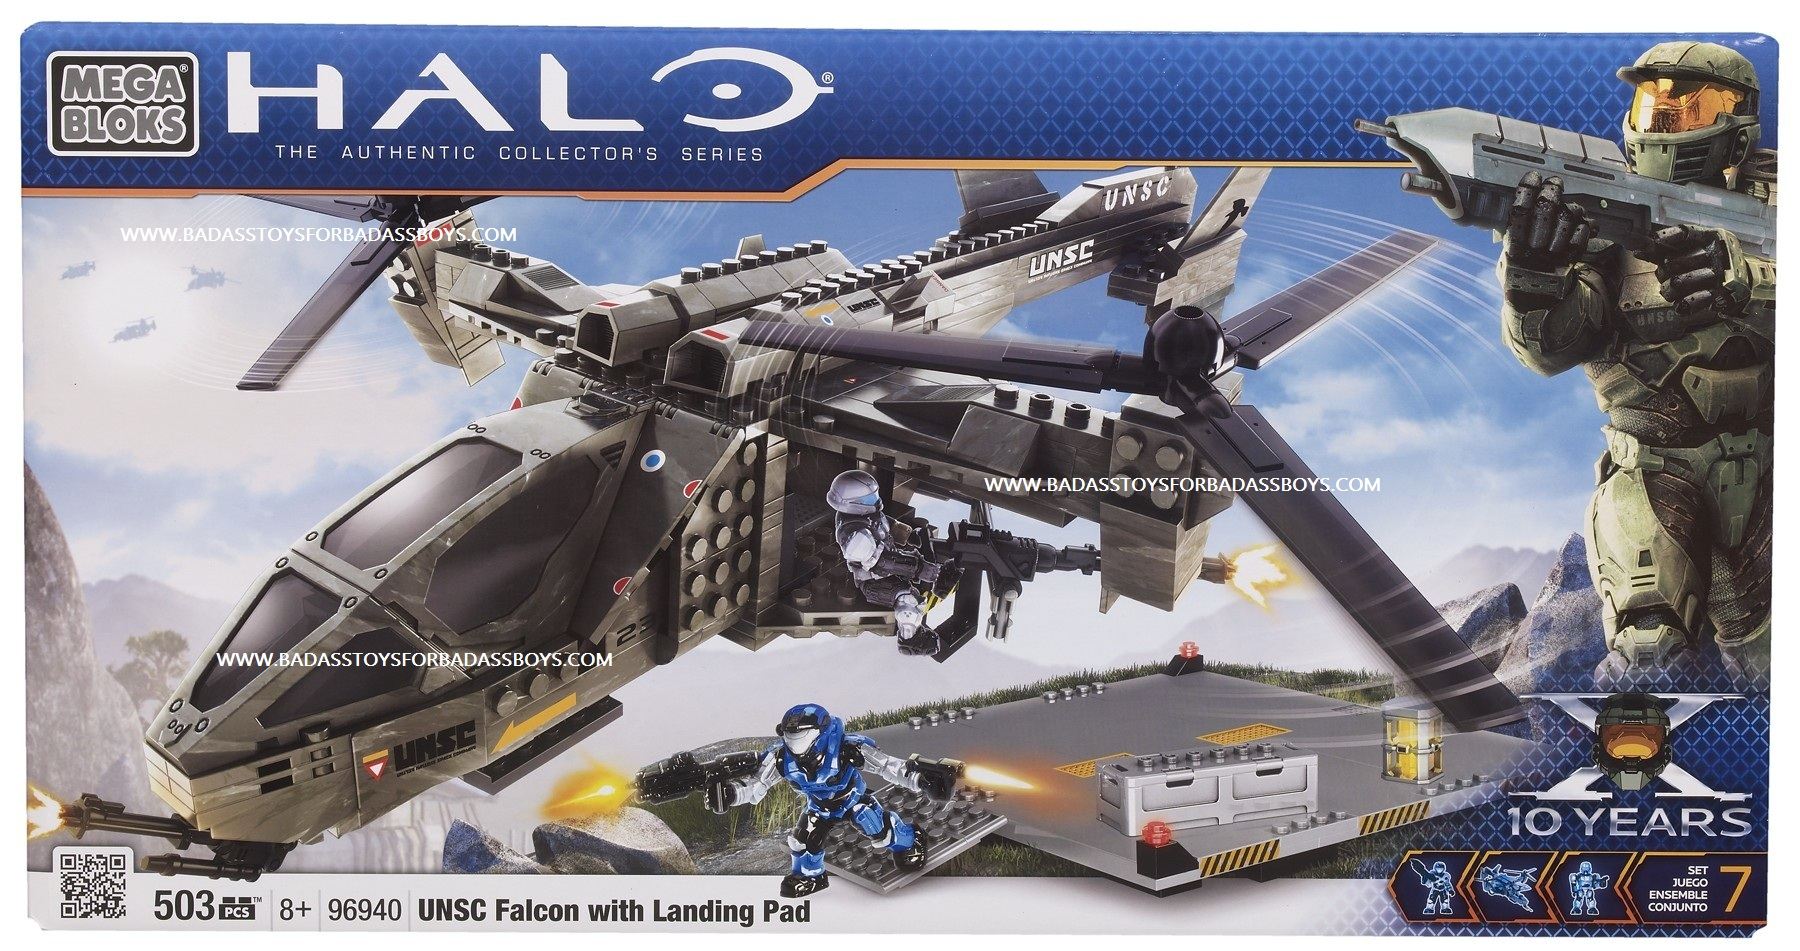 UNSC Falcon with landing pad